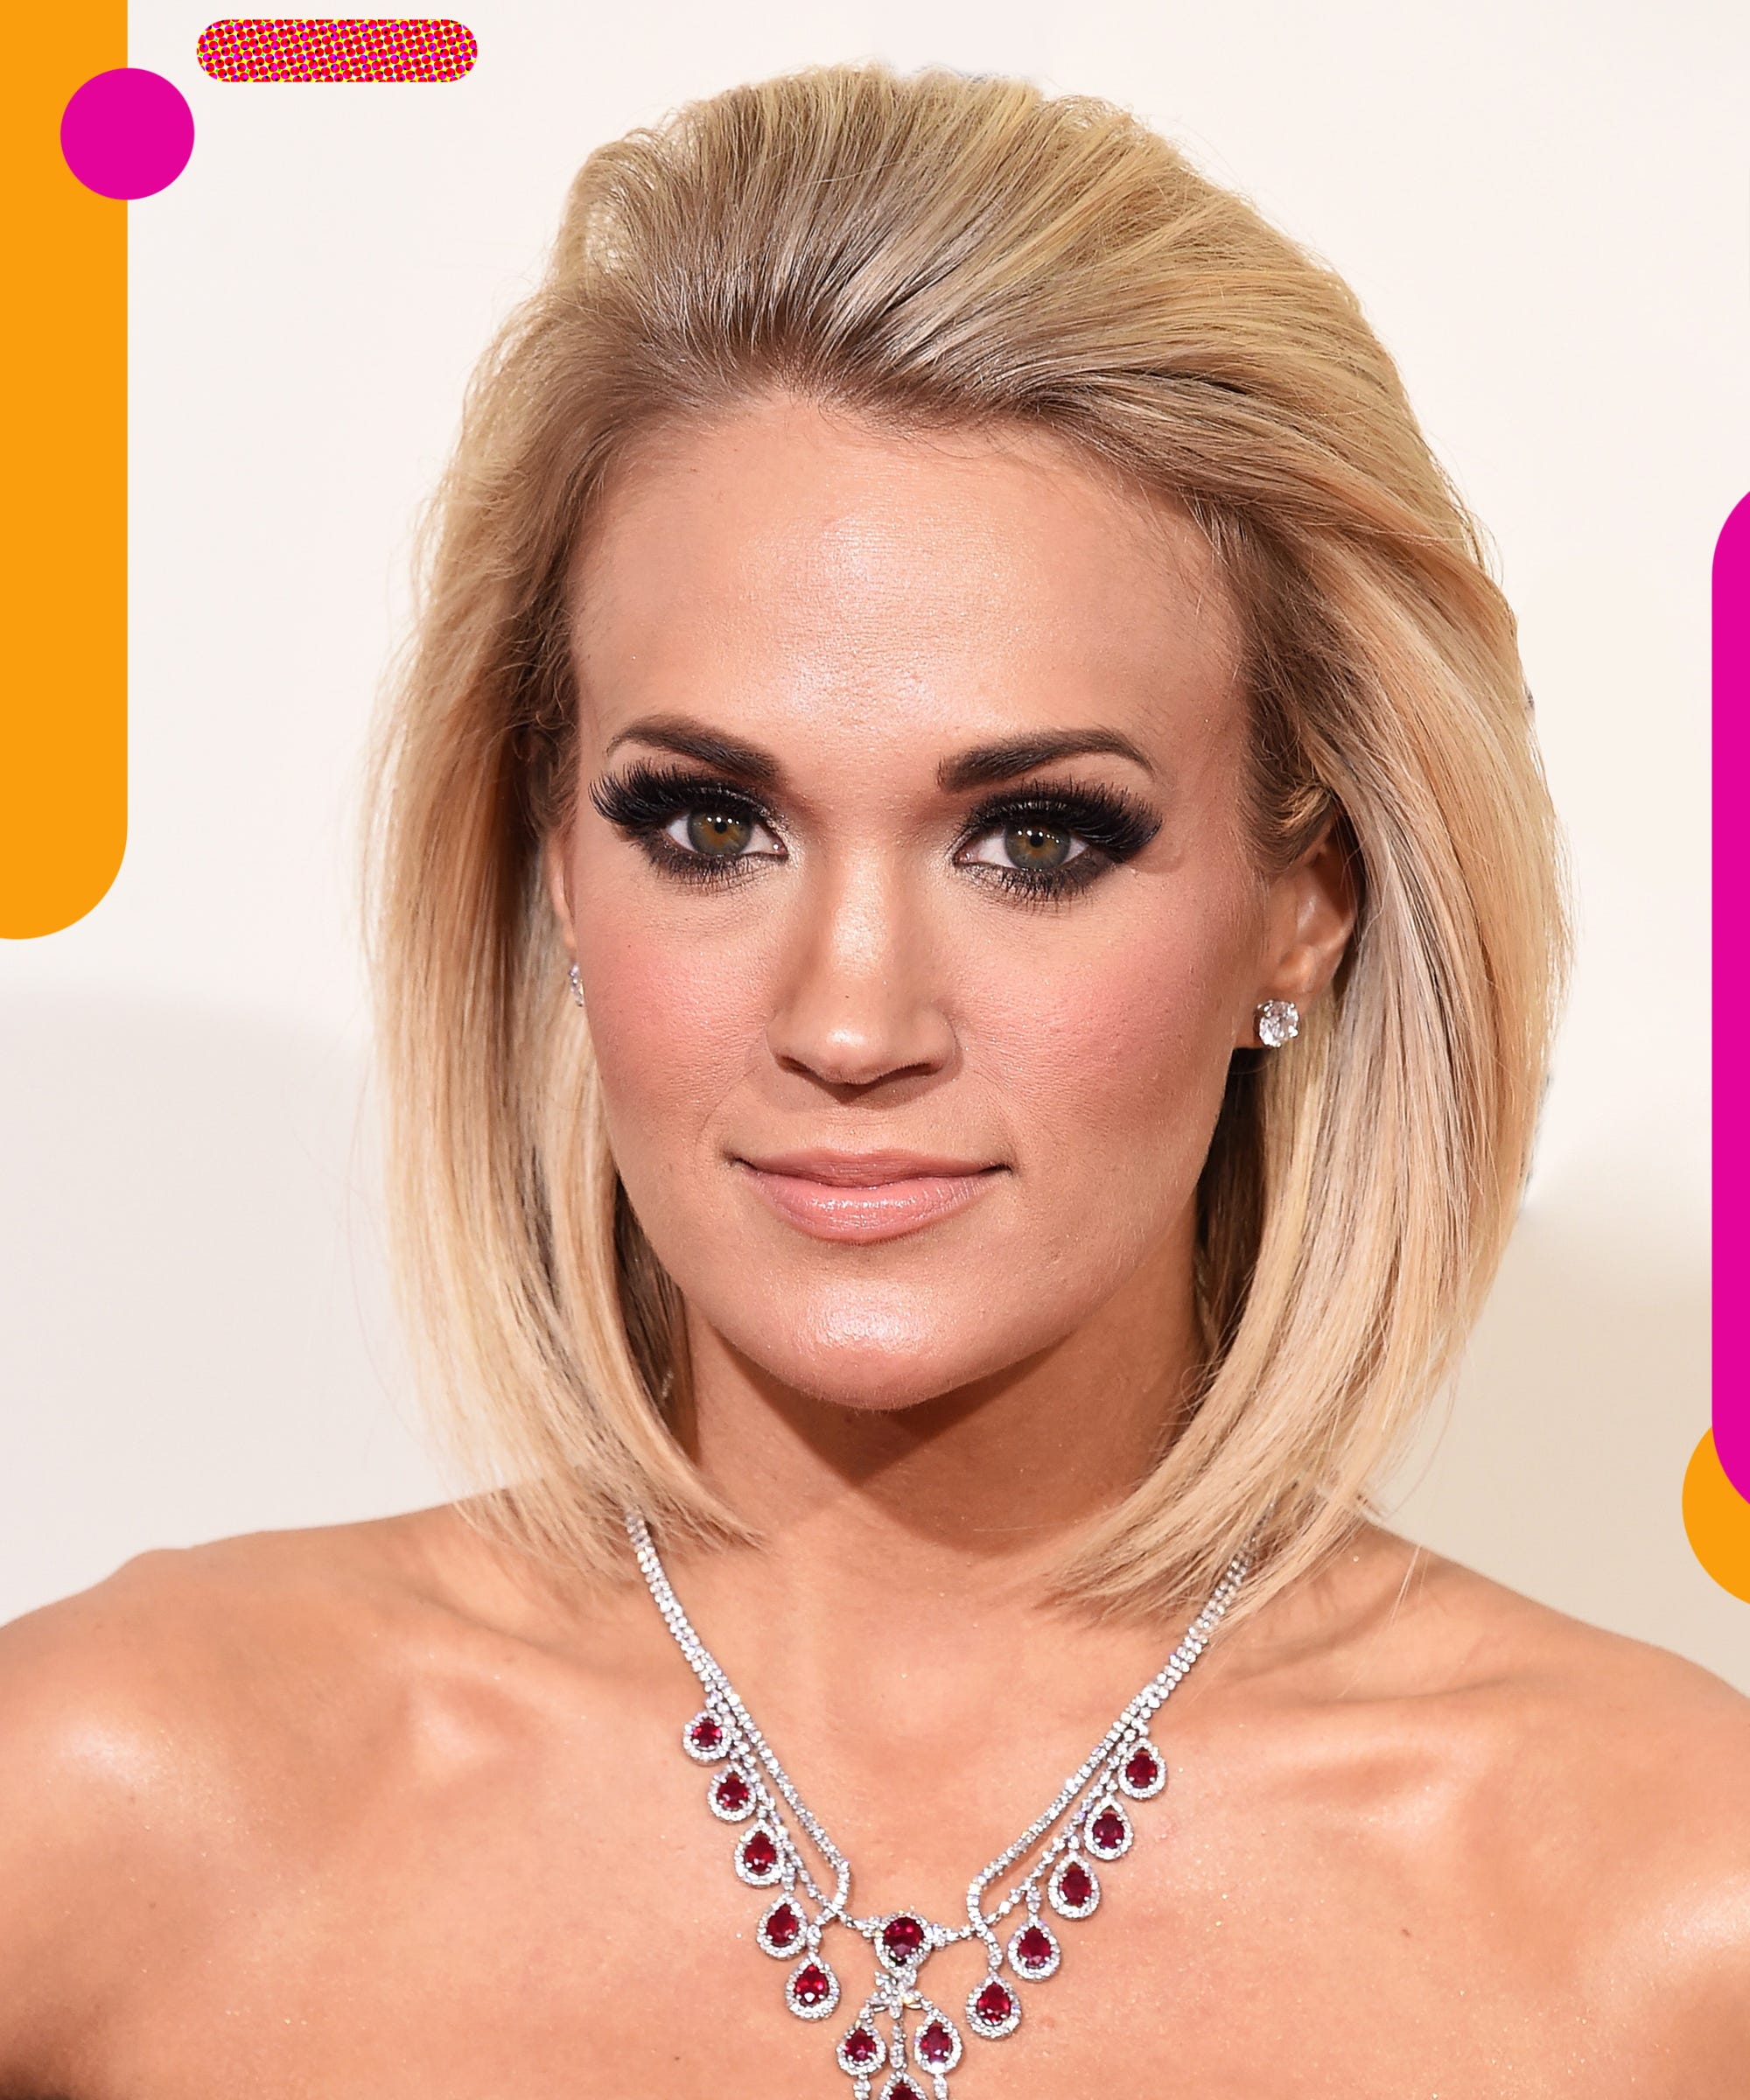 Carrie Underwood Says Scar Is Not Plastic Surgery